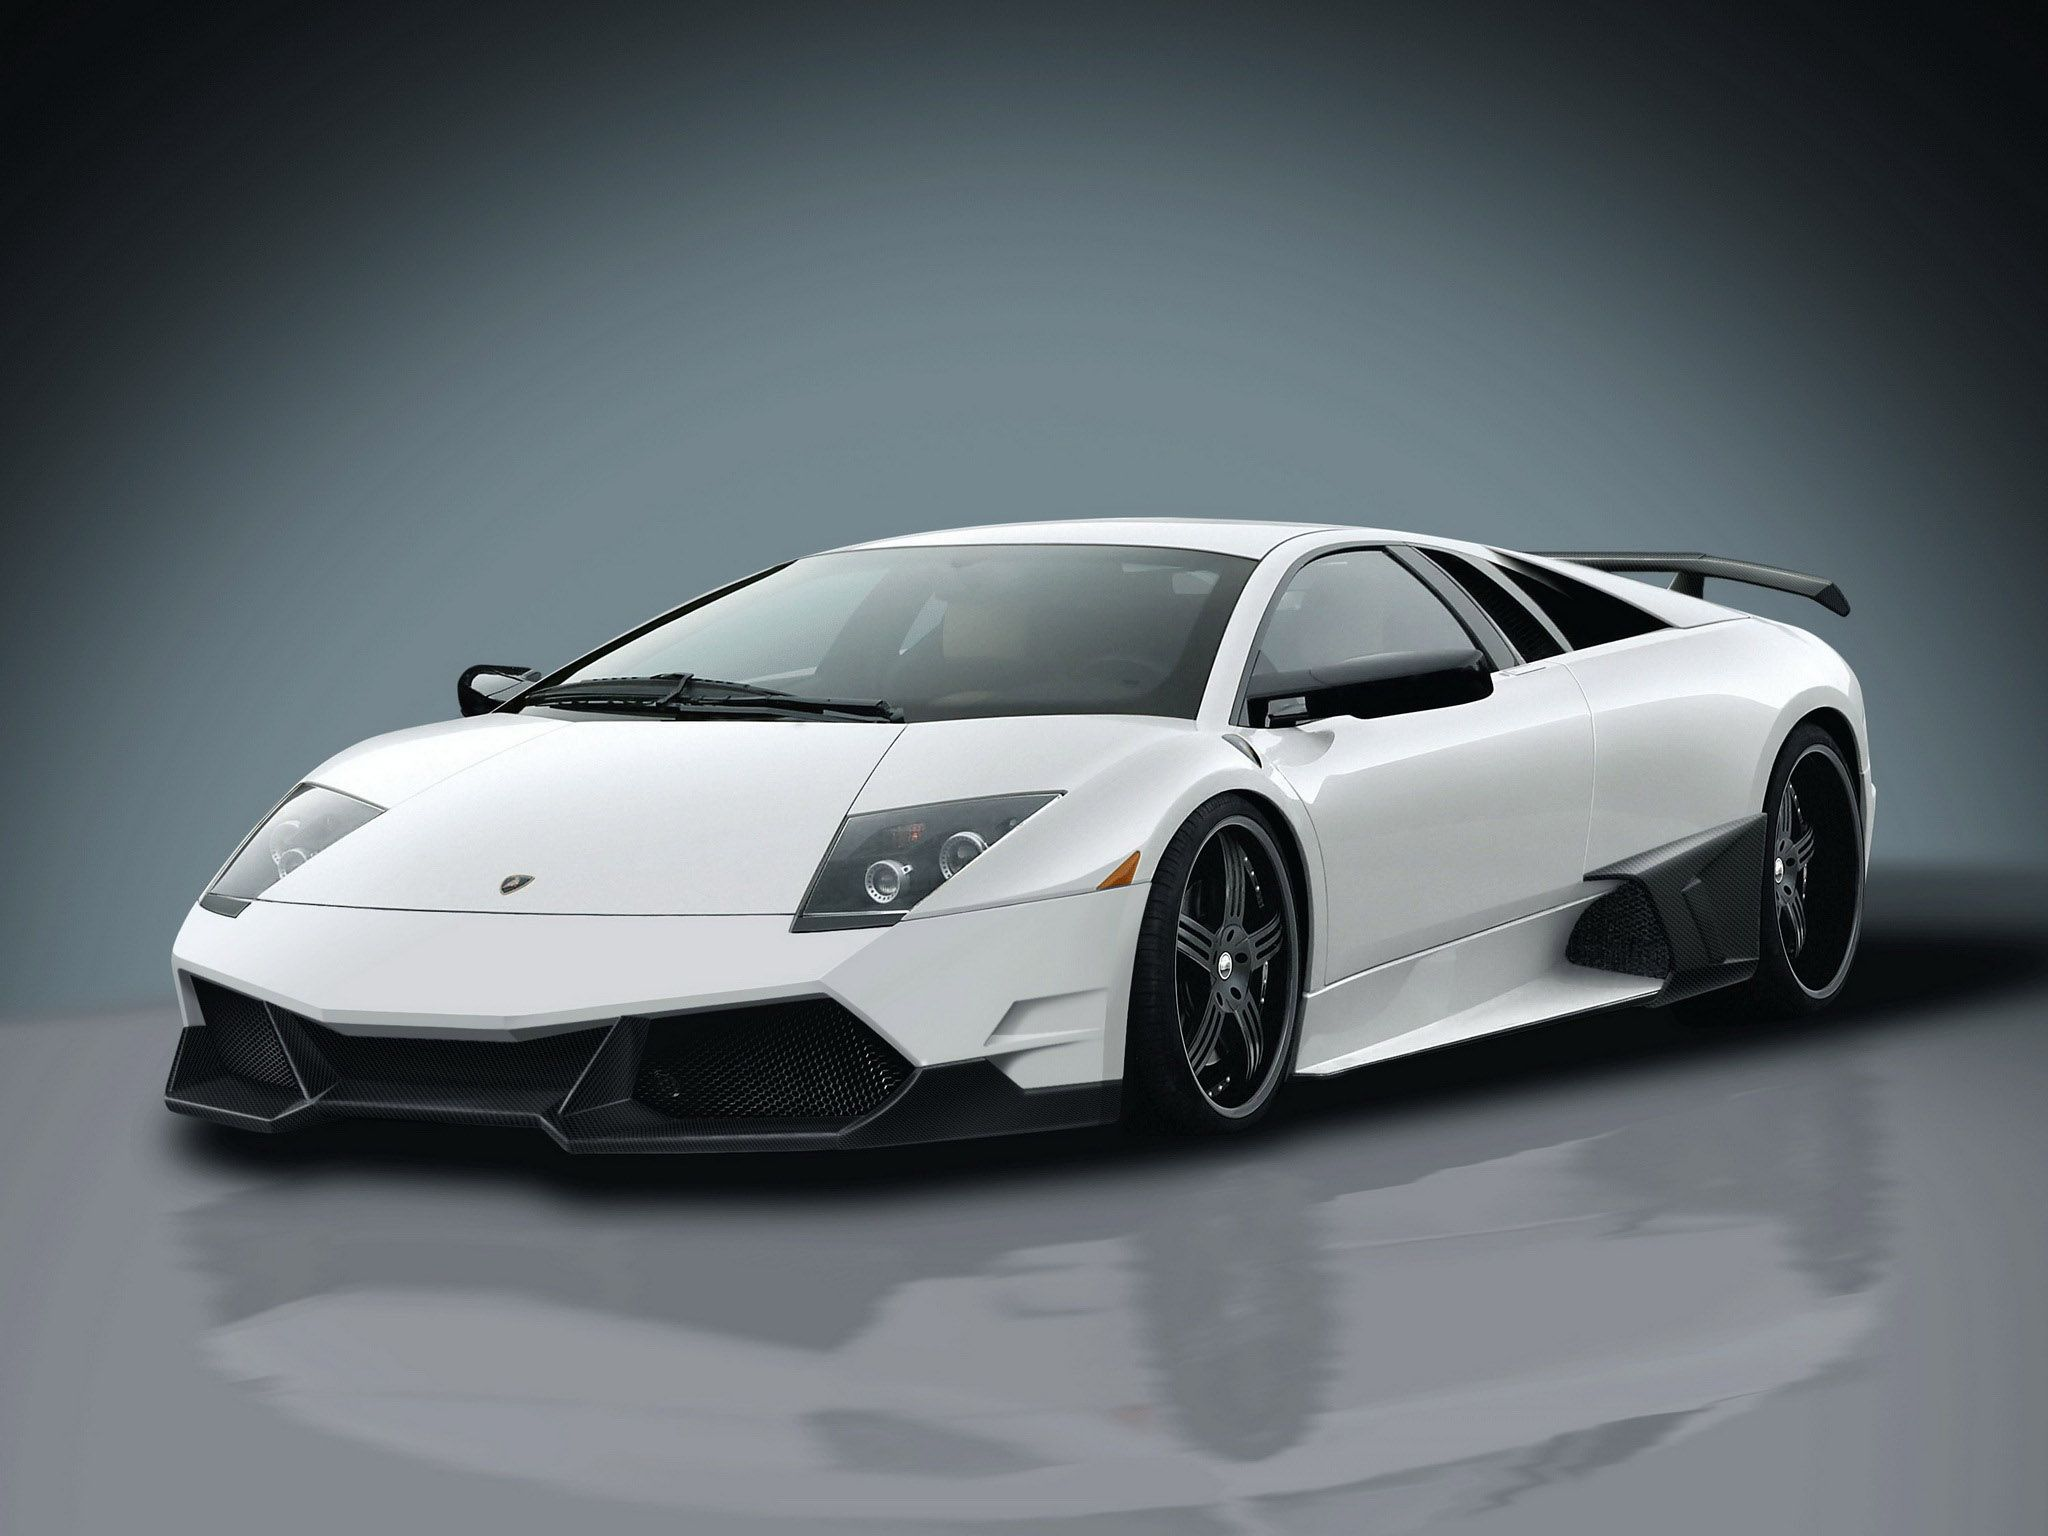 lamborghini wallpapers lamborghini wallpapers   Part 18 2048x1536